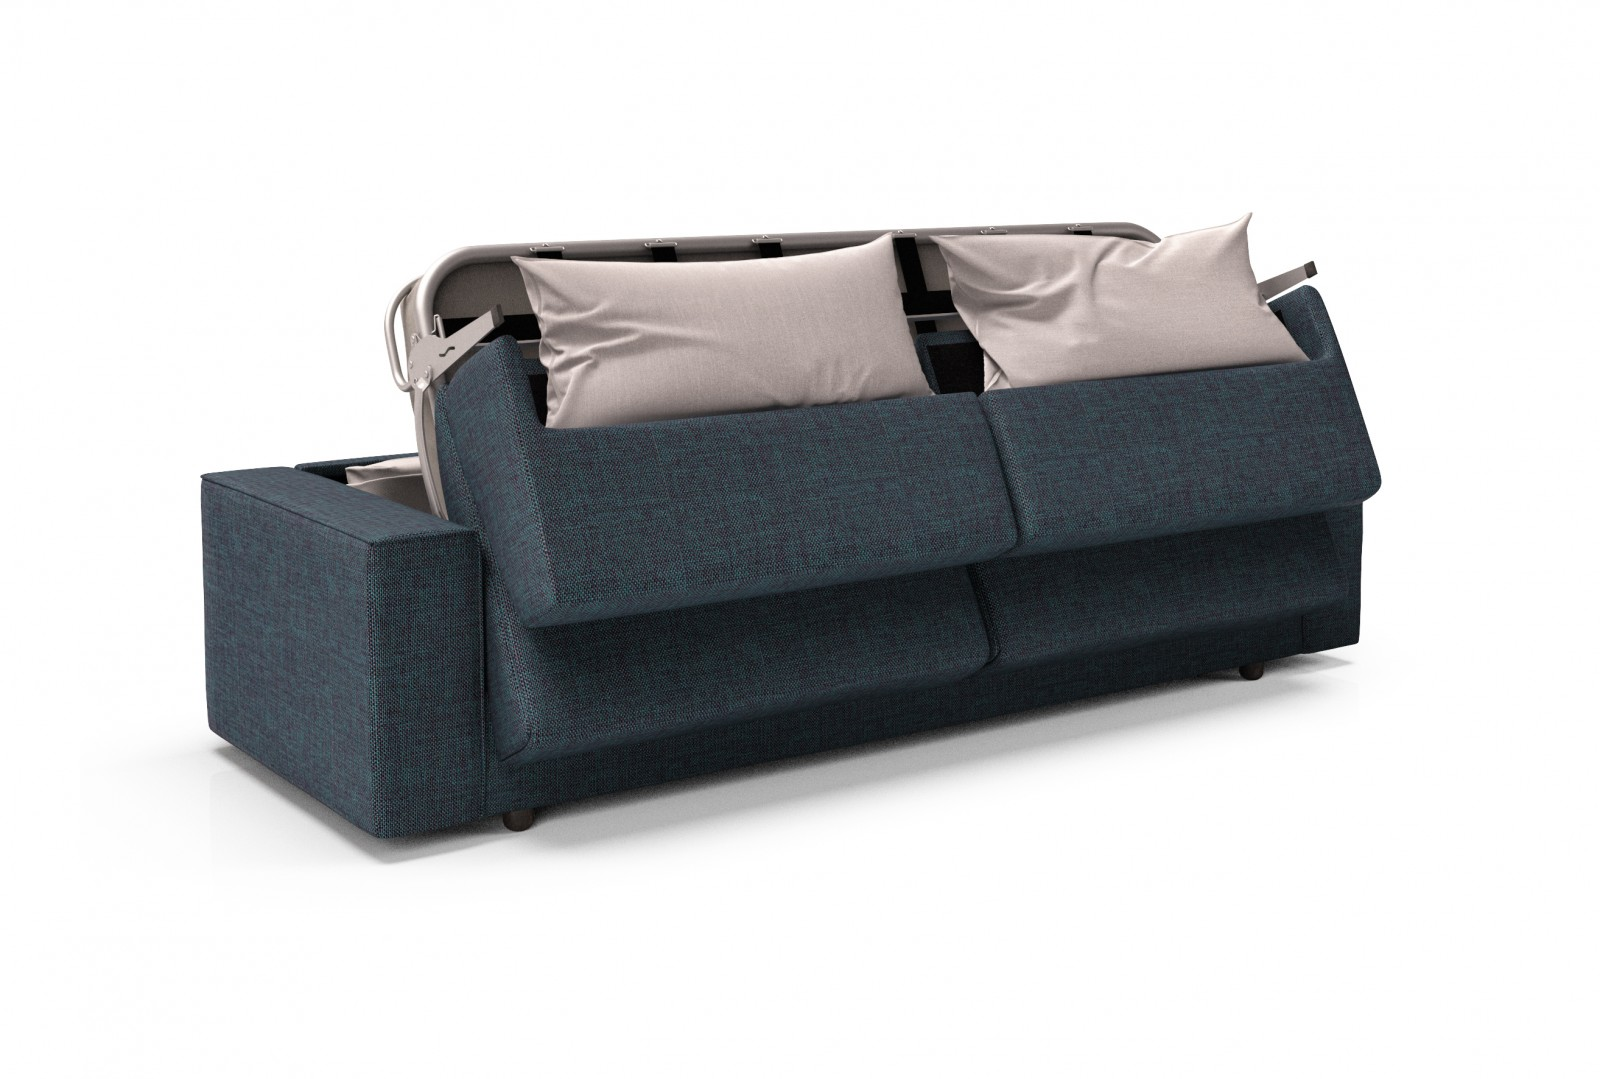 - Sofa Bed - Queen Size : Fold Collection, Furniture Manufacturer